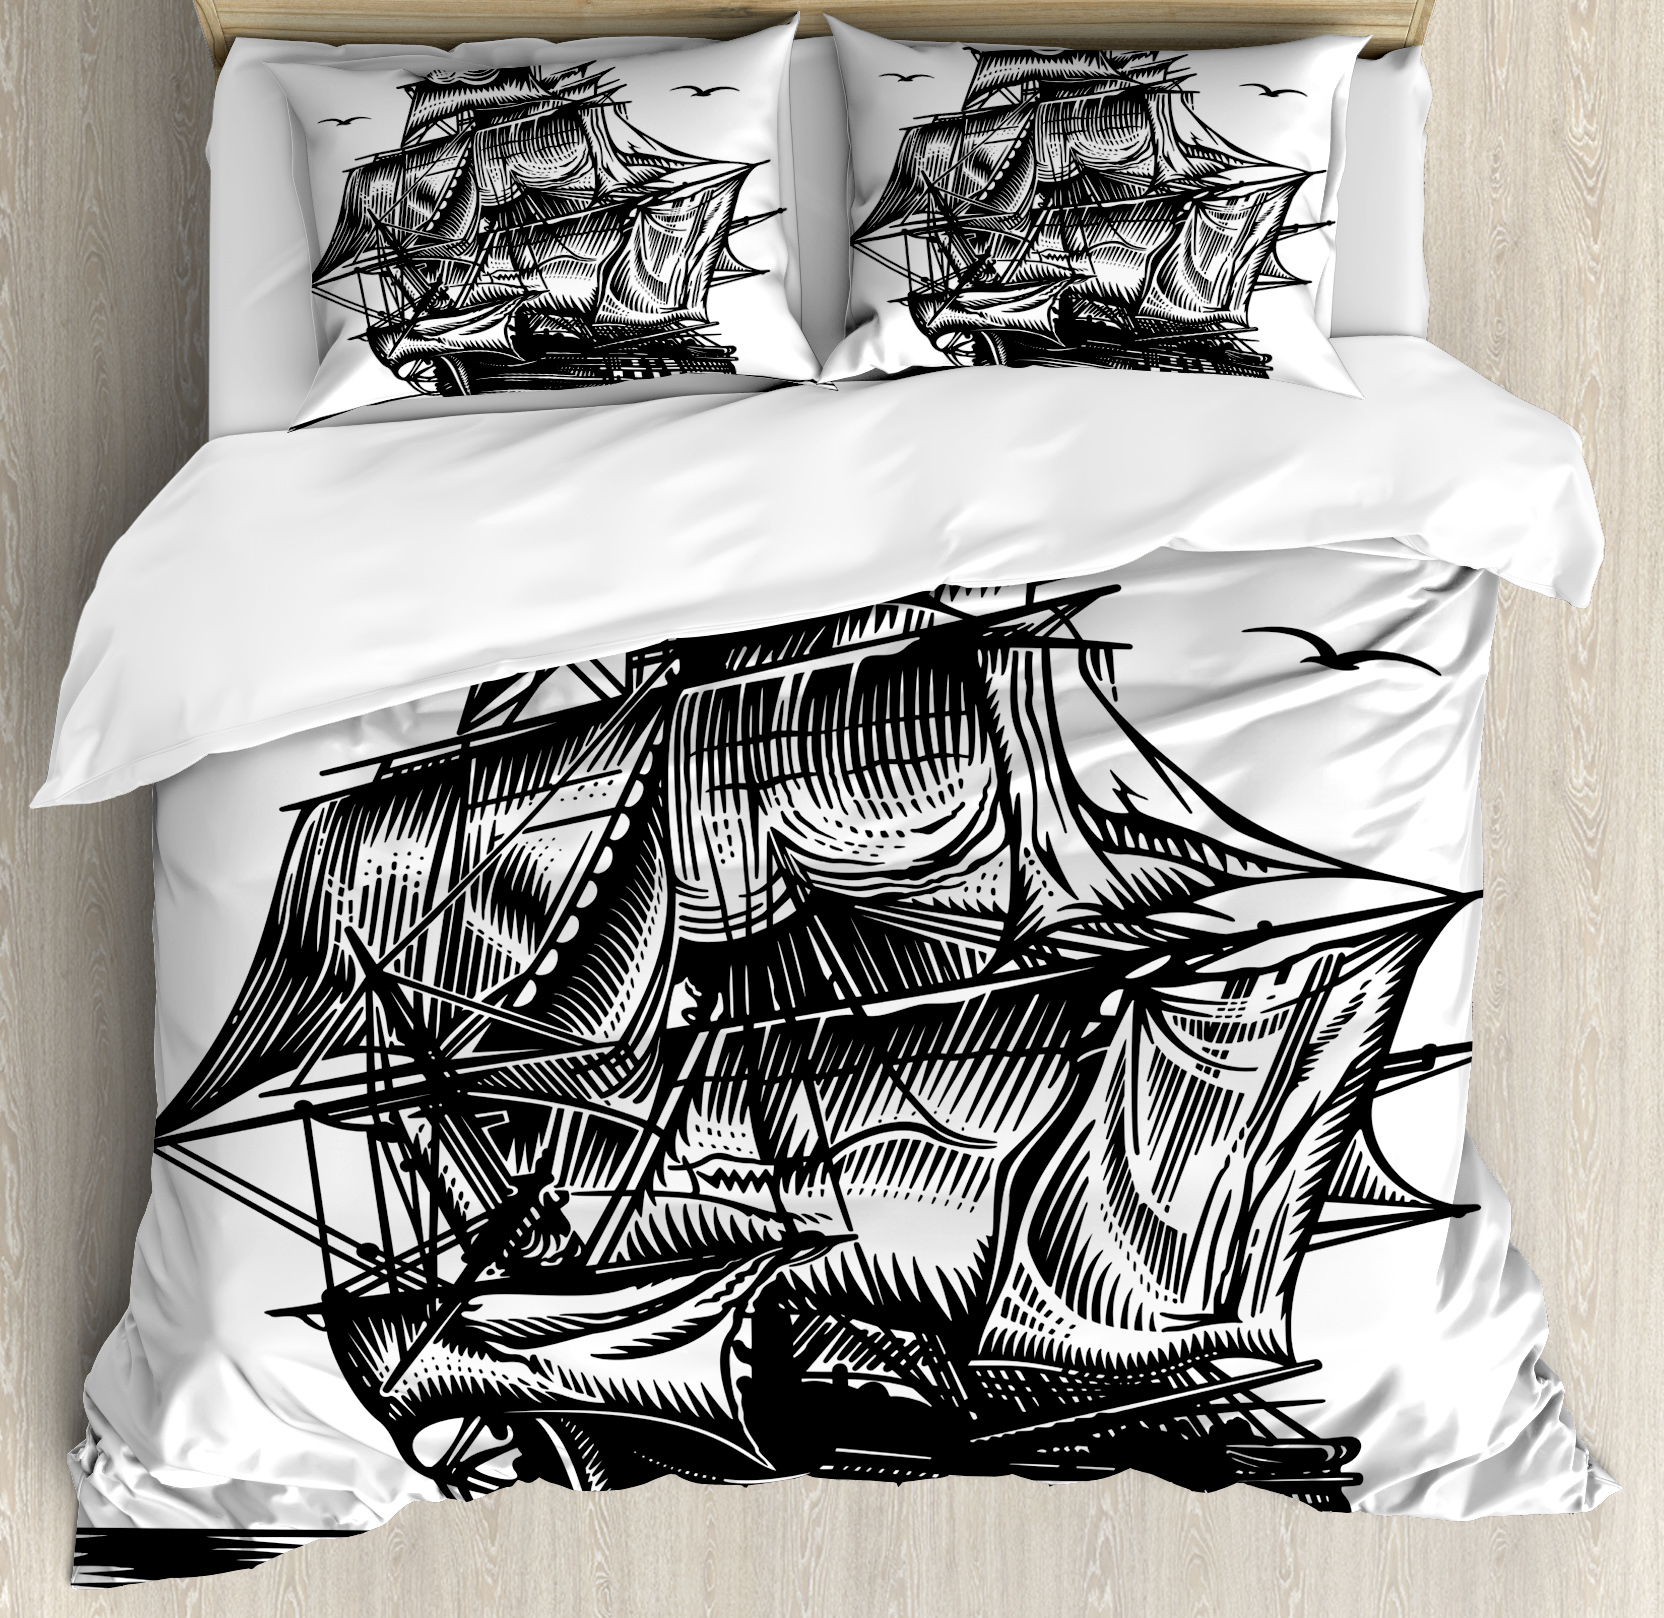 Pirate Ship Queen Size Duvet Cover Set, Nautical Line Art Style Illustration with Vintage Sailboat on Exotic Waters, Decorative 3 Piece Bedding Set with 2 Pillow Shams, Black White, by Ambesonne